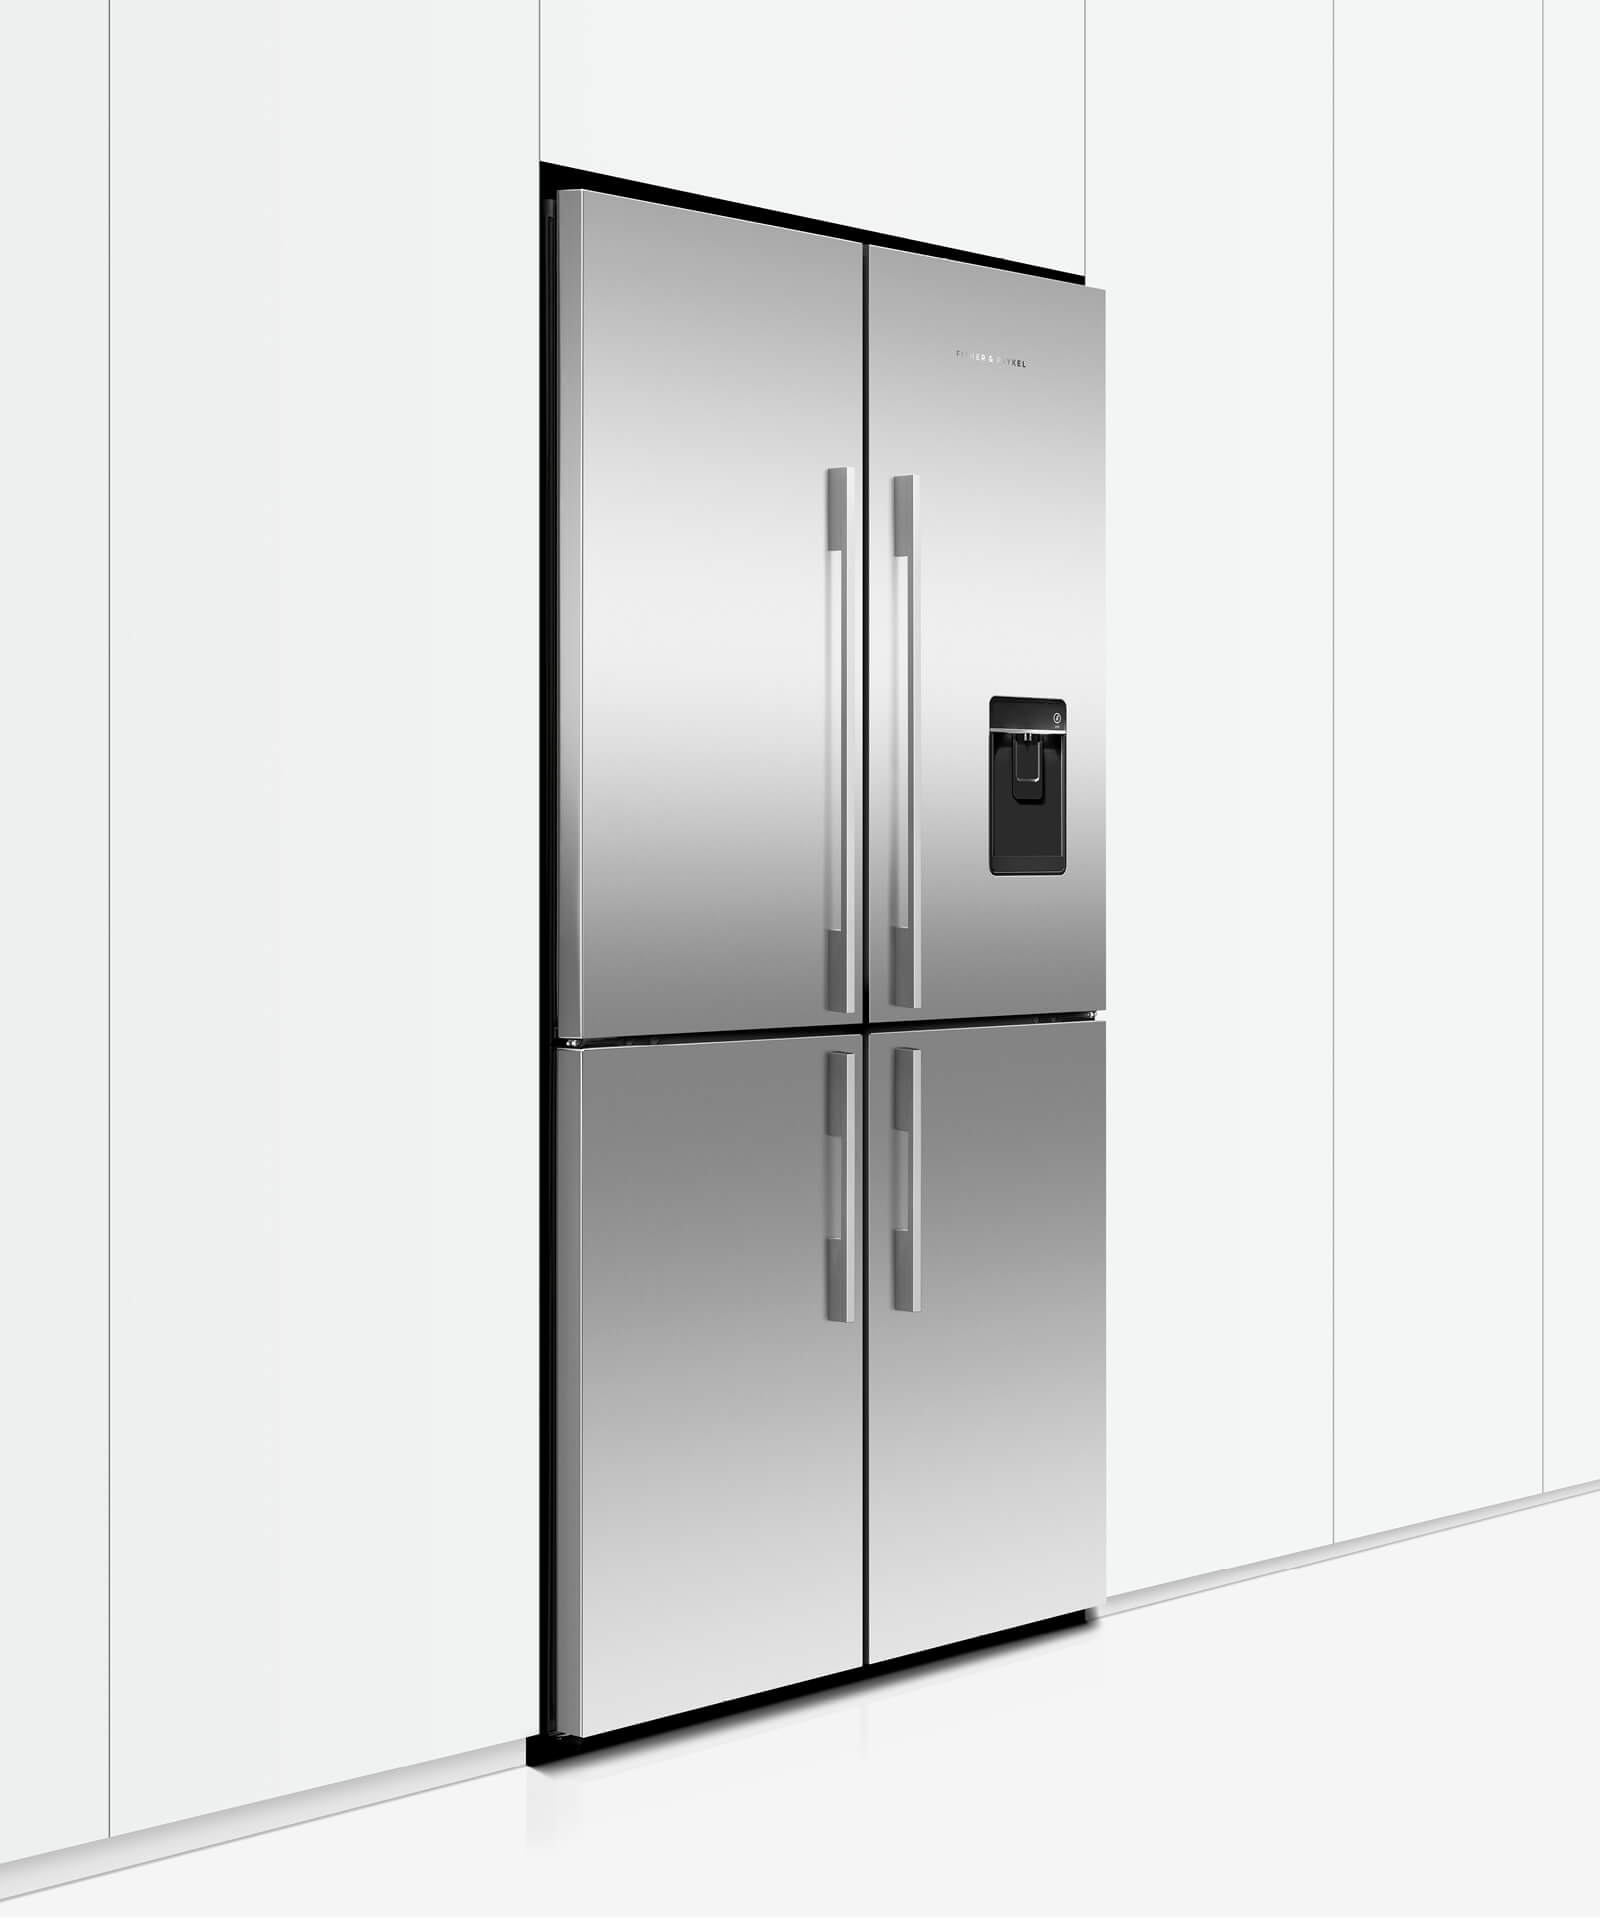 RF605QDUVX1 - Quad Door Fridge Freezer 905mm 605L Ice & Water